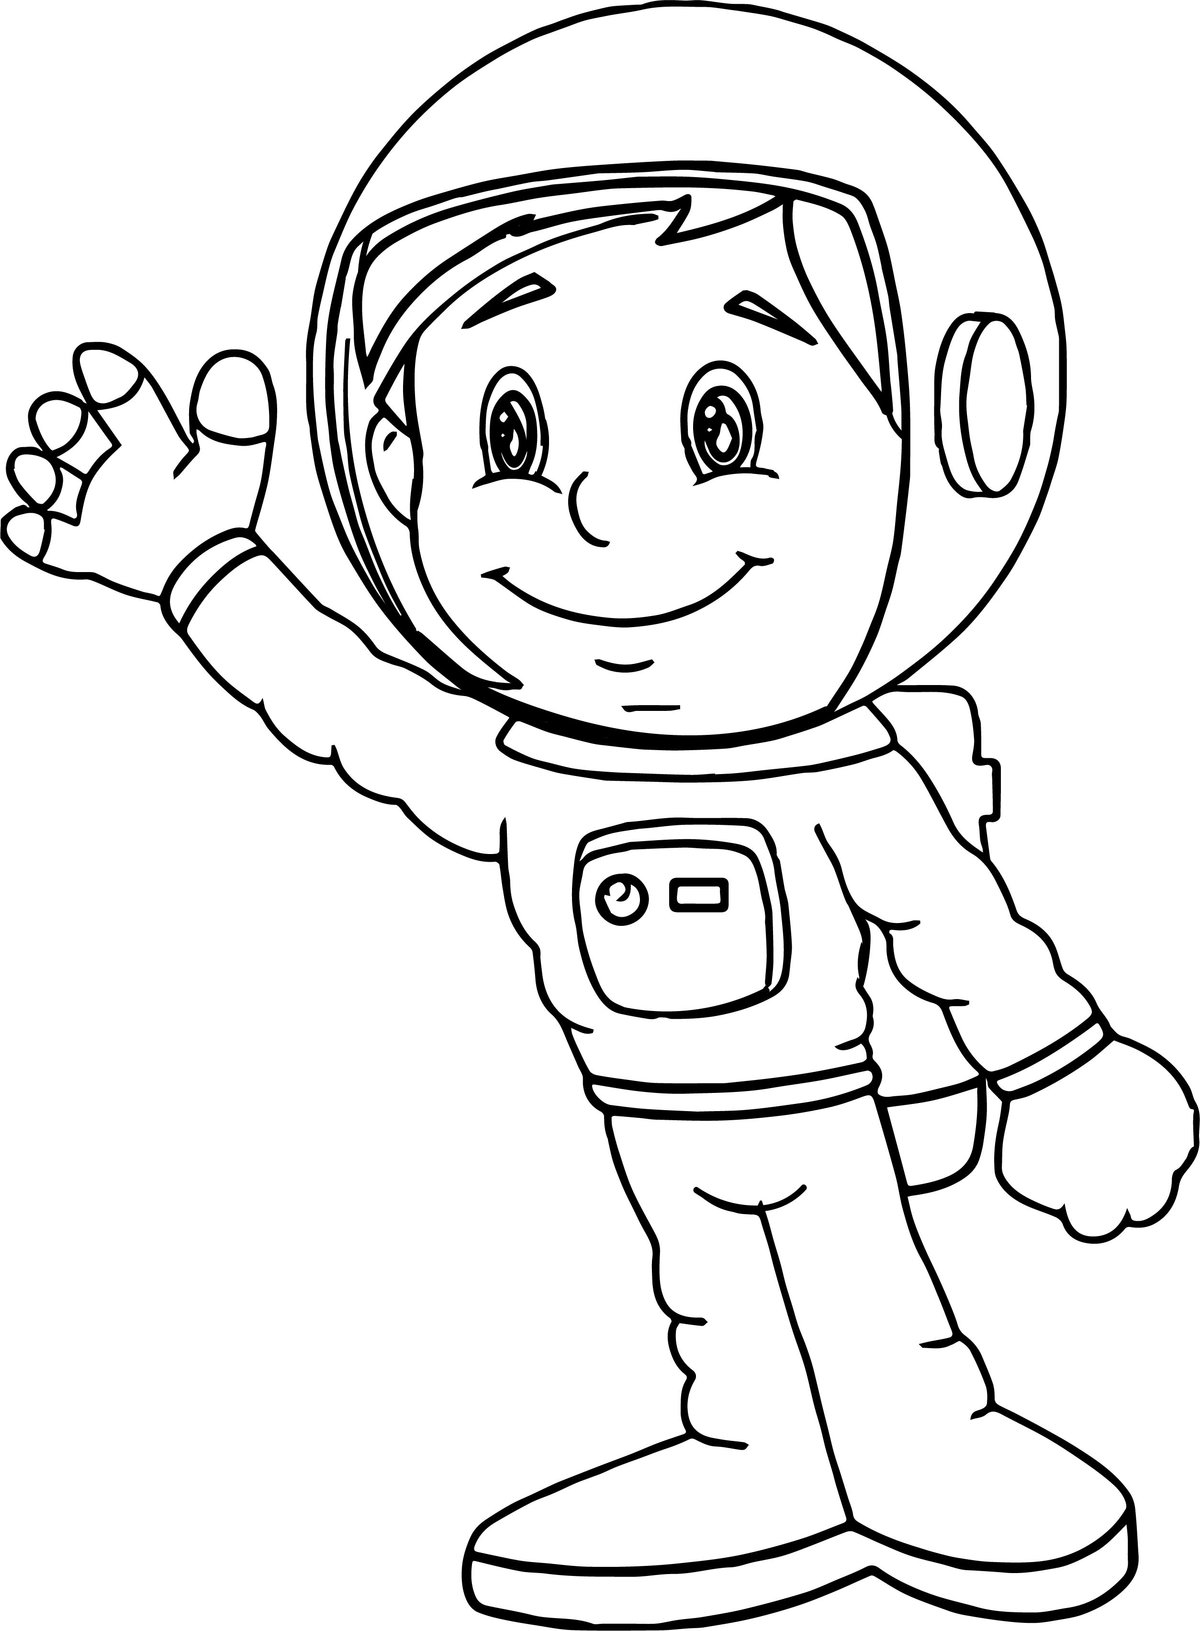 preschool astronaut printables - HD 2507×3407